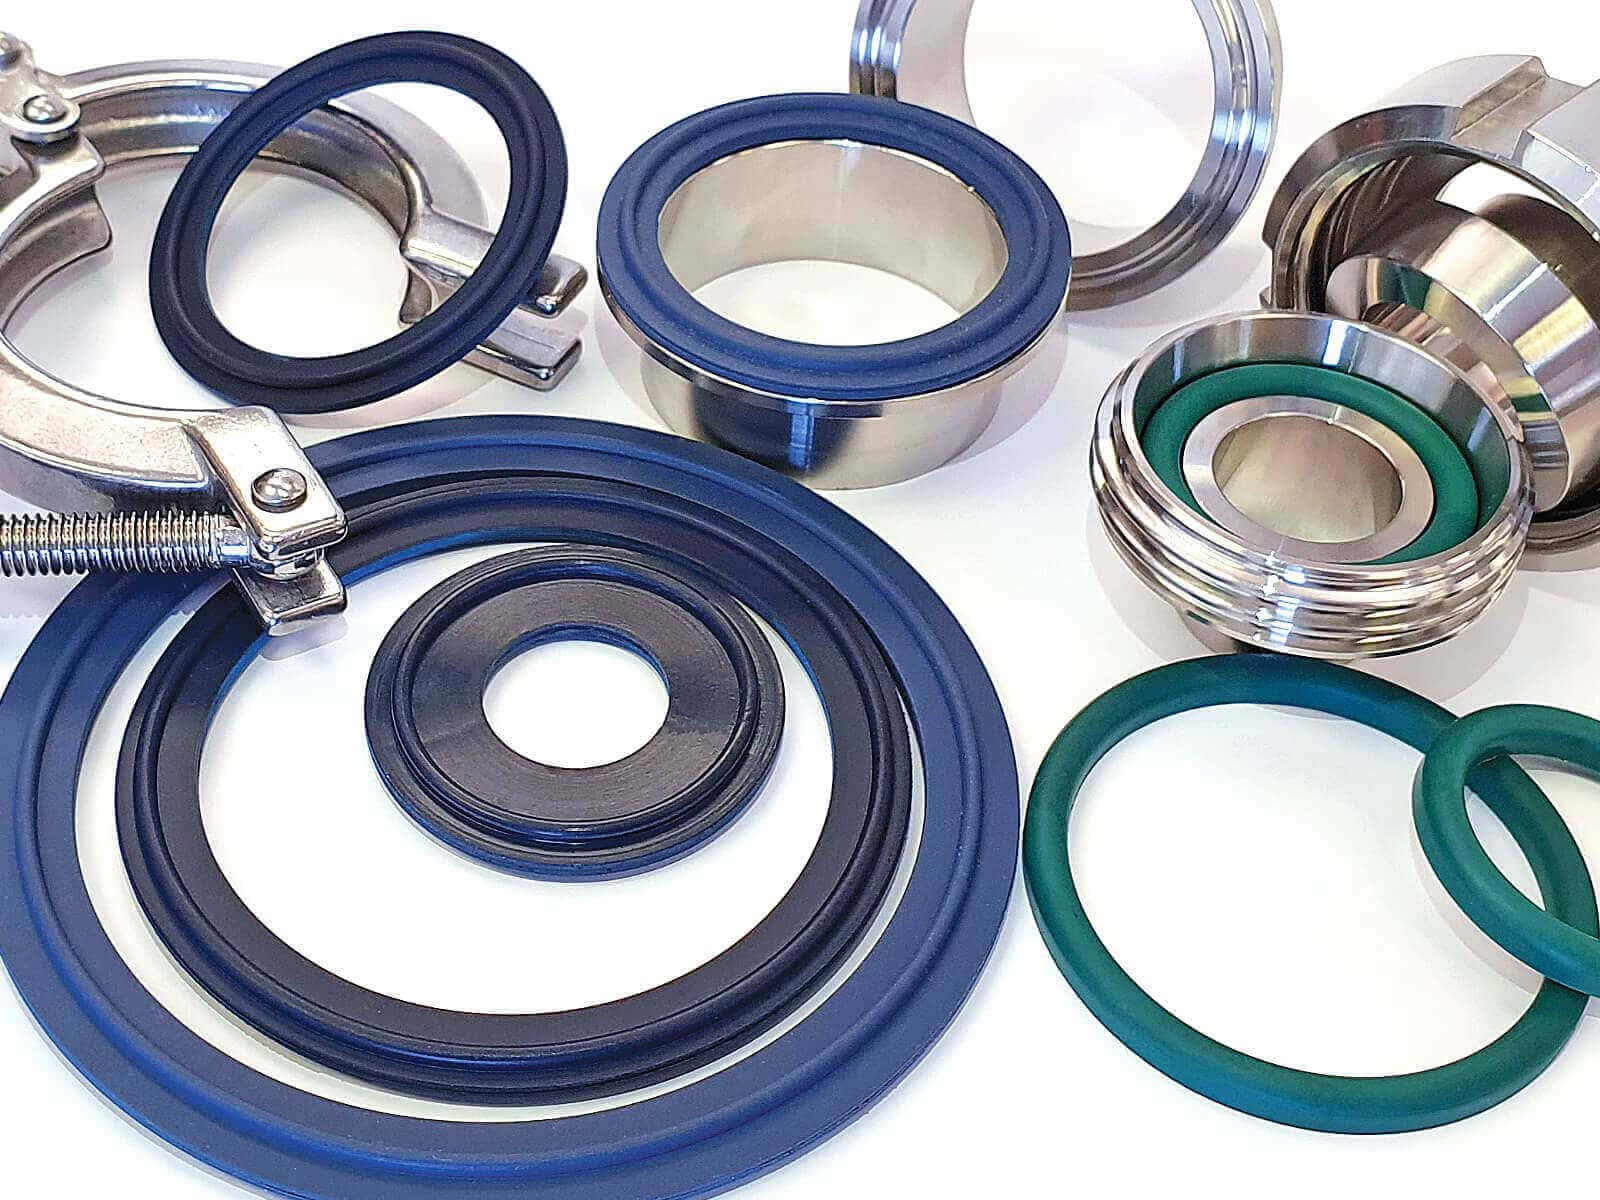 Metal Detectable Rubber Tri-Clover Seals